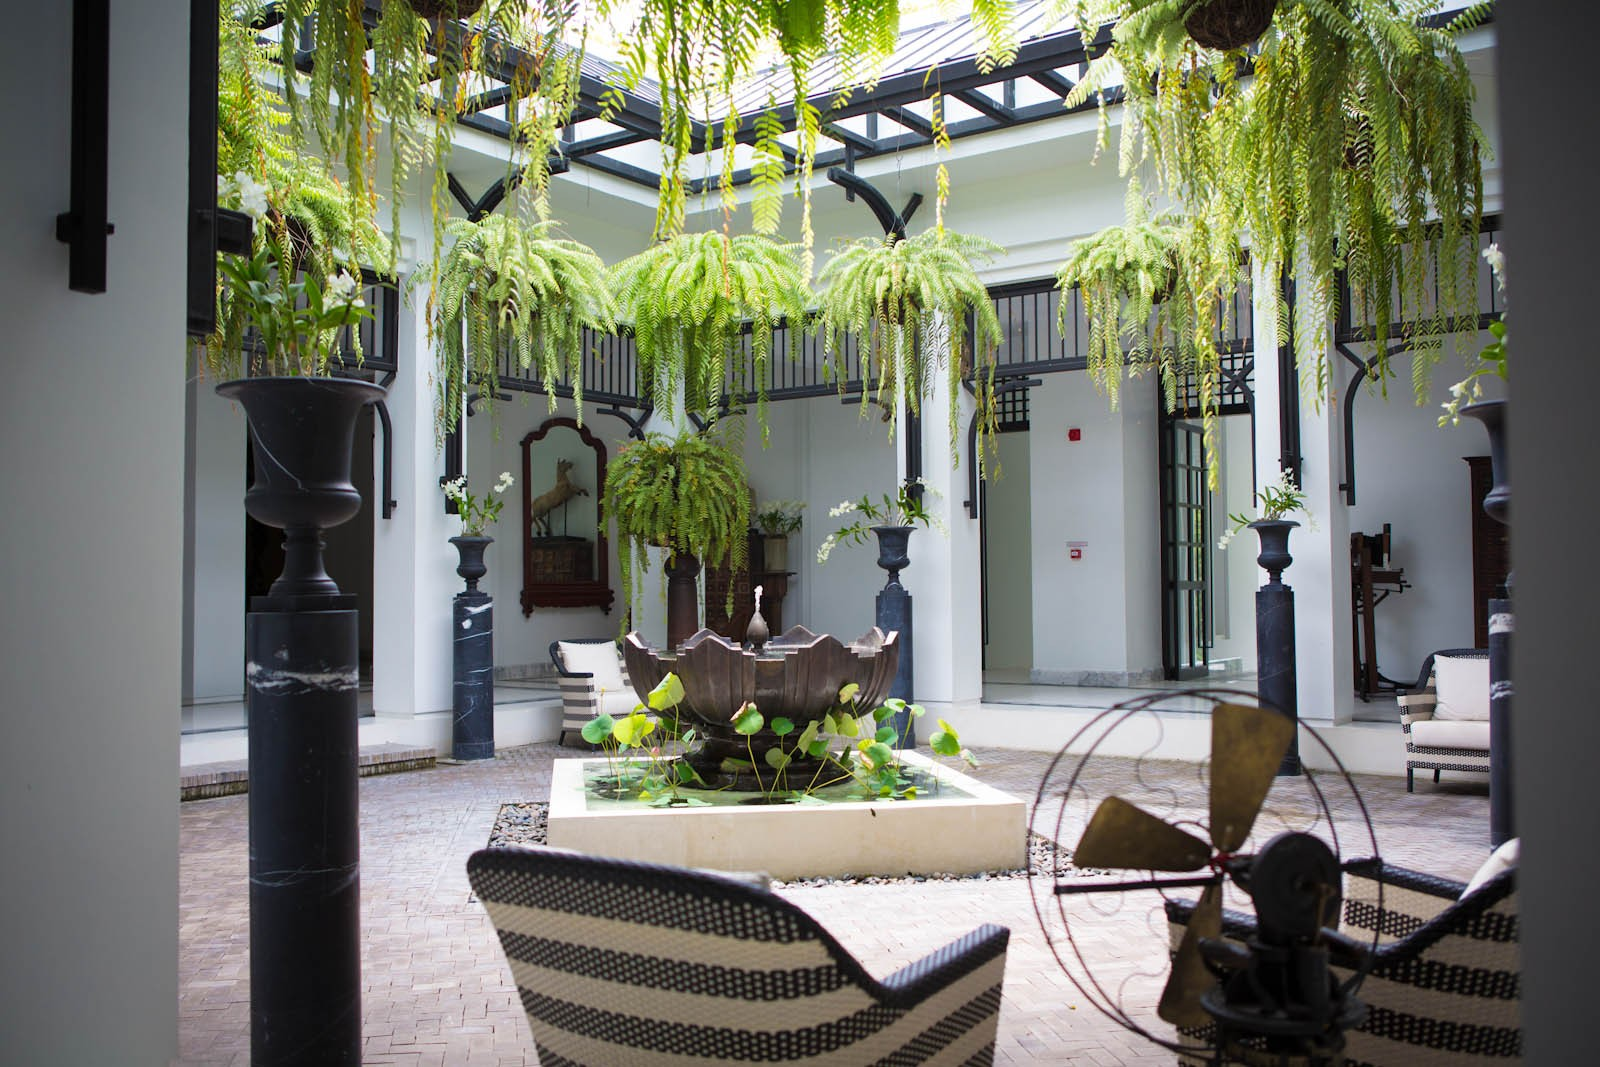 Courtyard at the Siam Hotel in Bangkok, Thailand